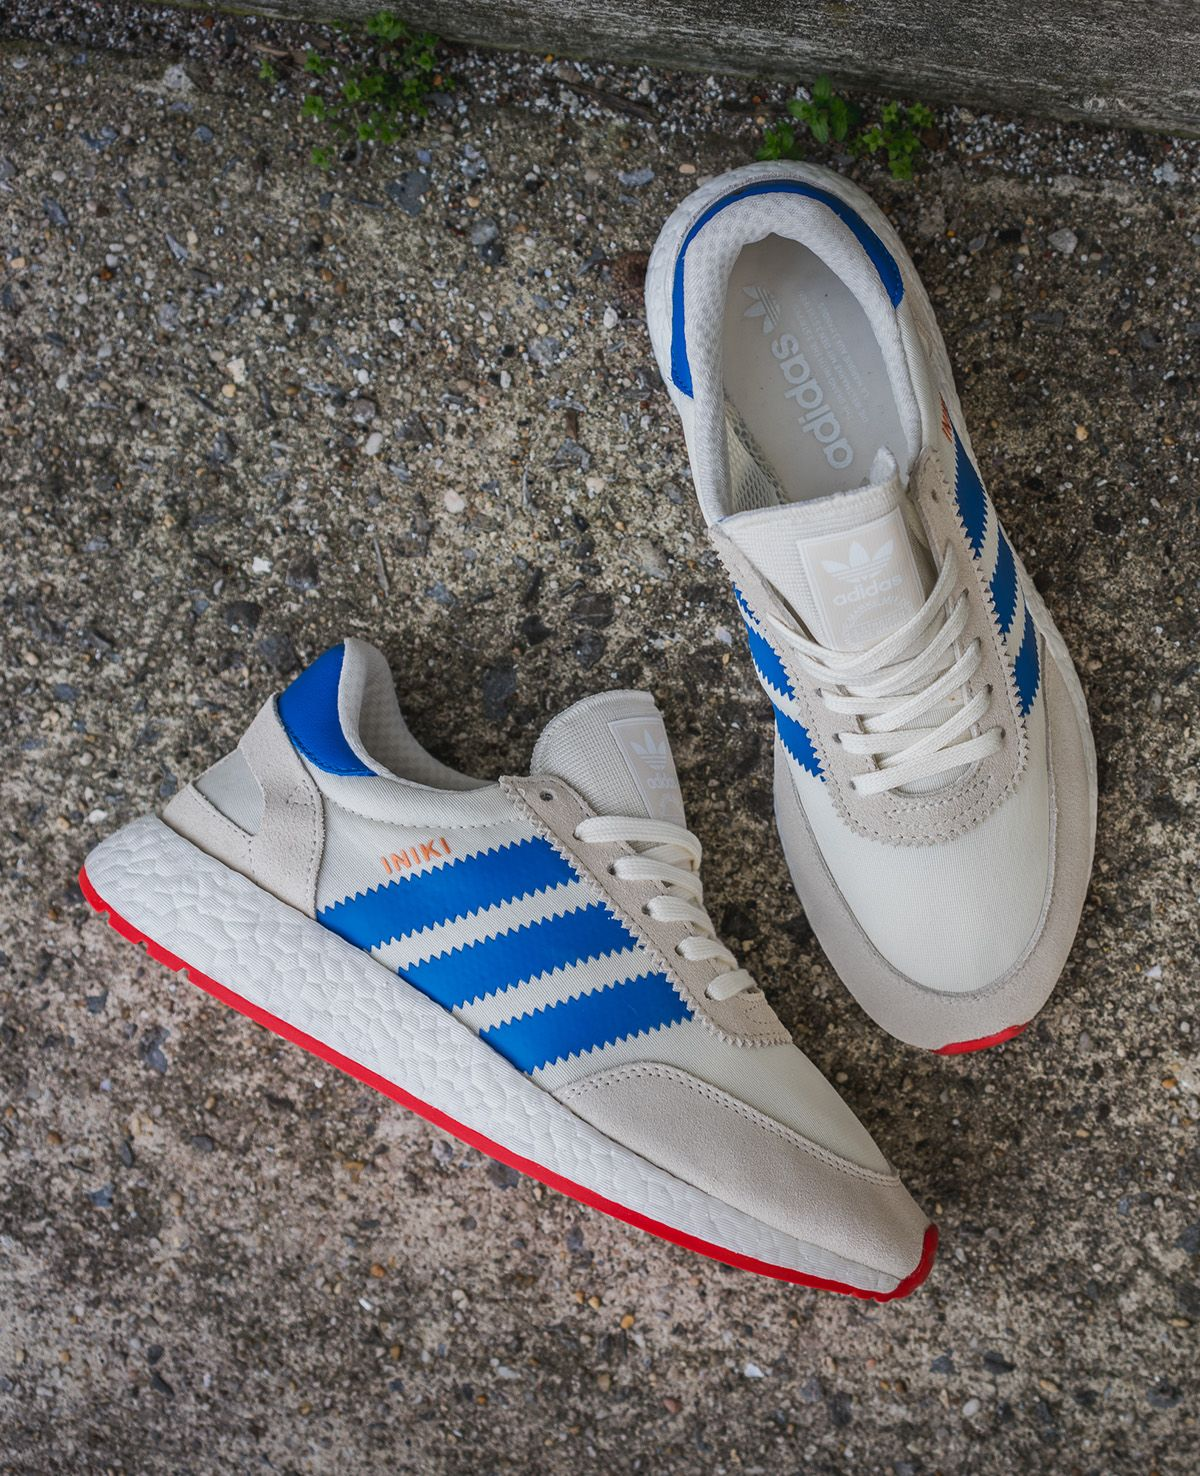 check out e197c b448a adidas Iniki Runner  Off White, Blue   Core Red  - EU Kicks  Sneaker  Magazine